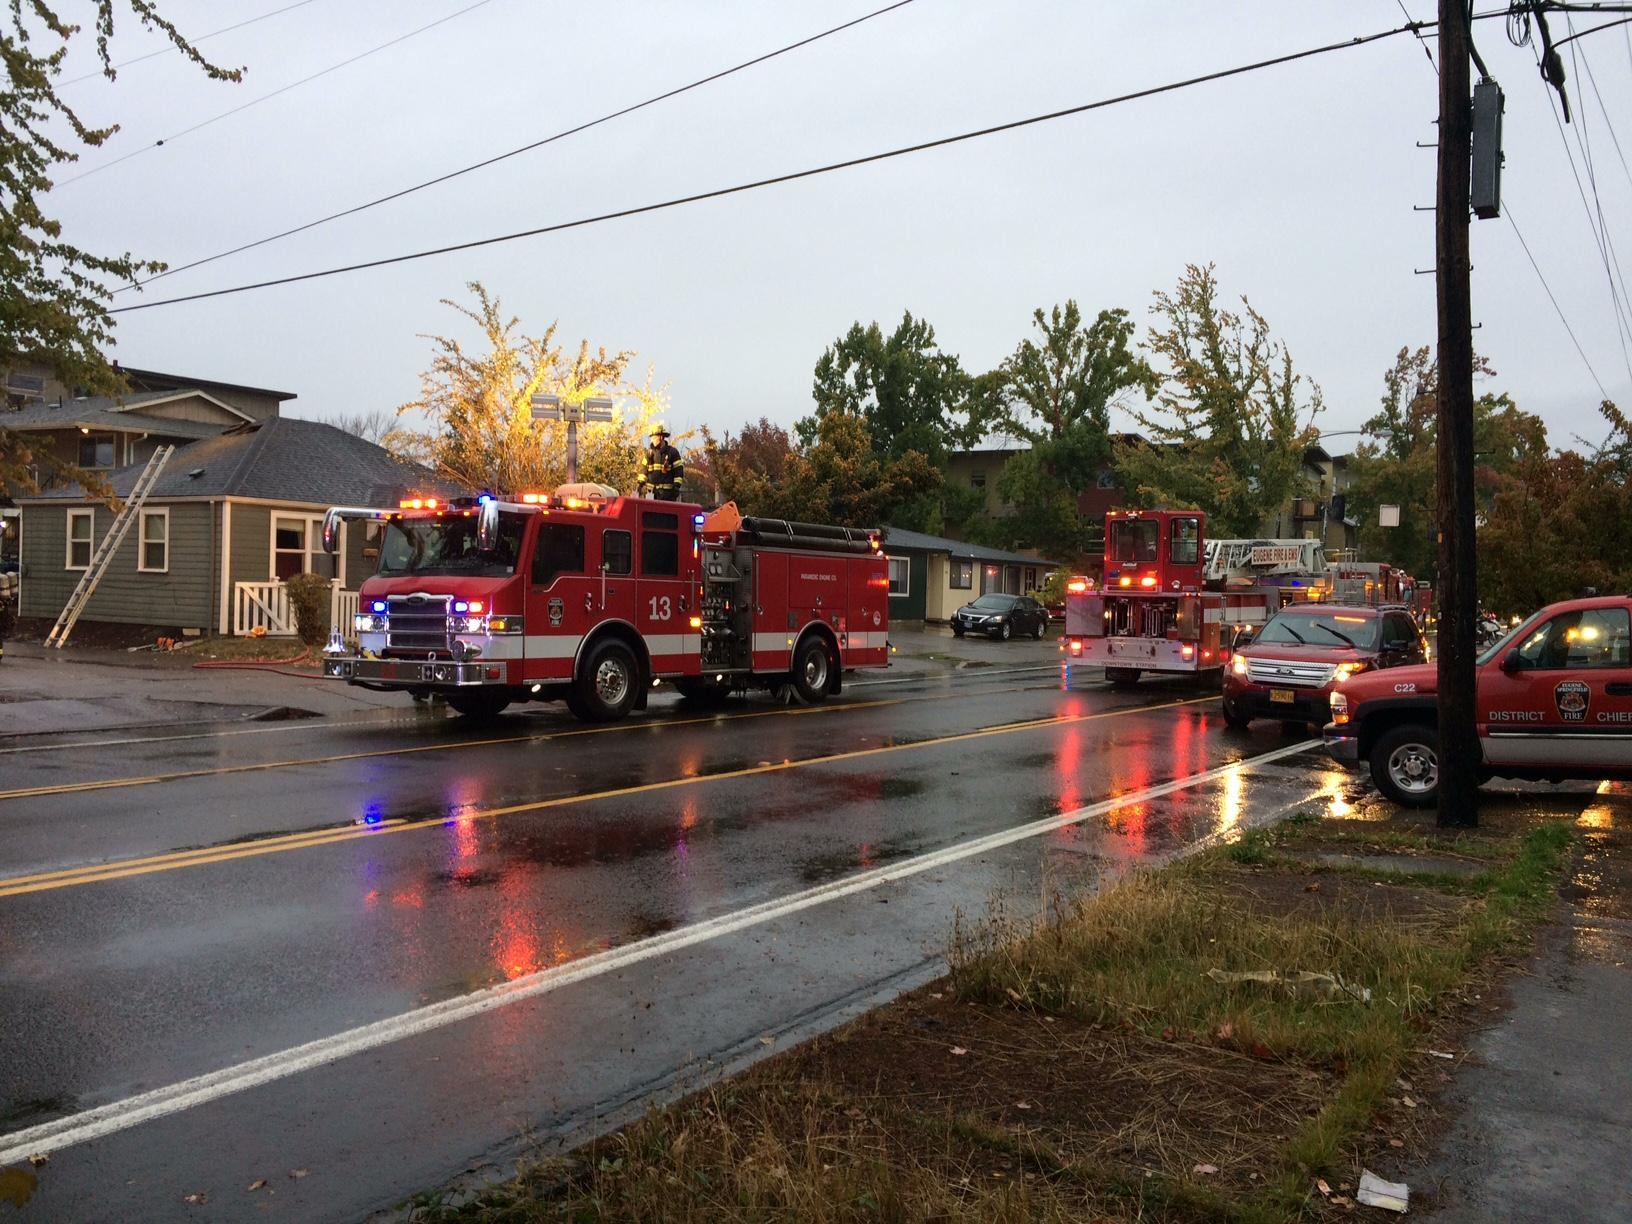 Fire crews on 18th Ave. in Eugene, October 12, 2017. (SBG)